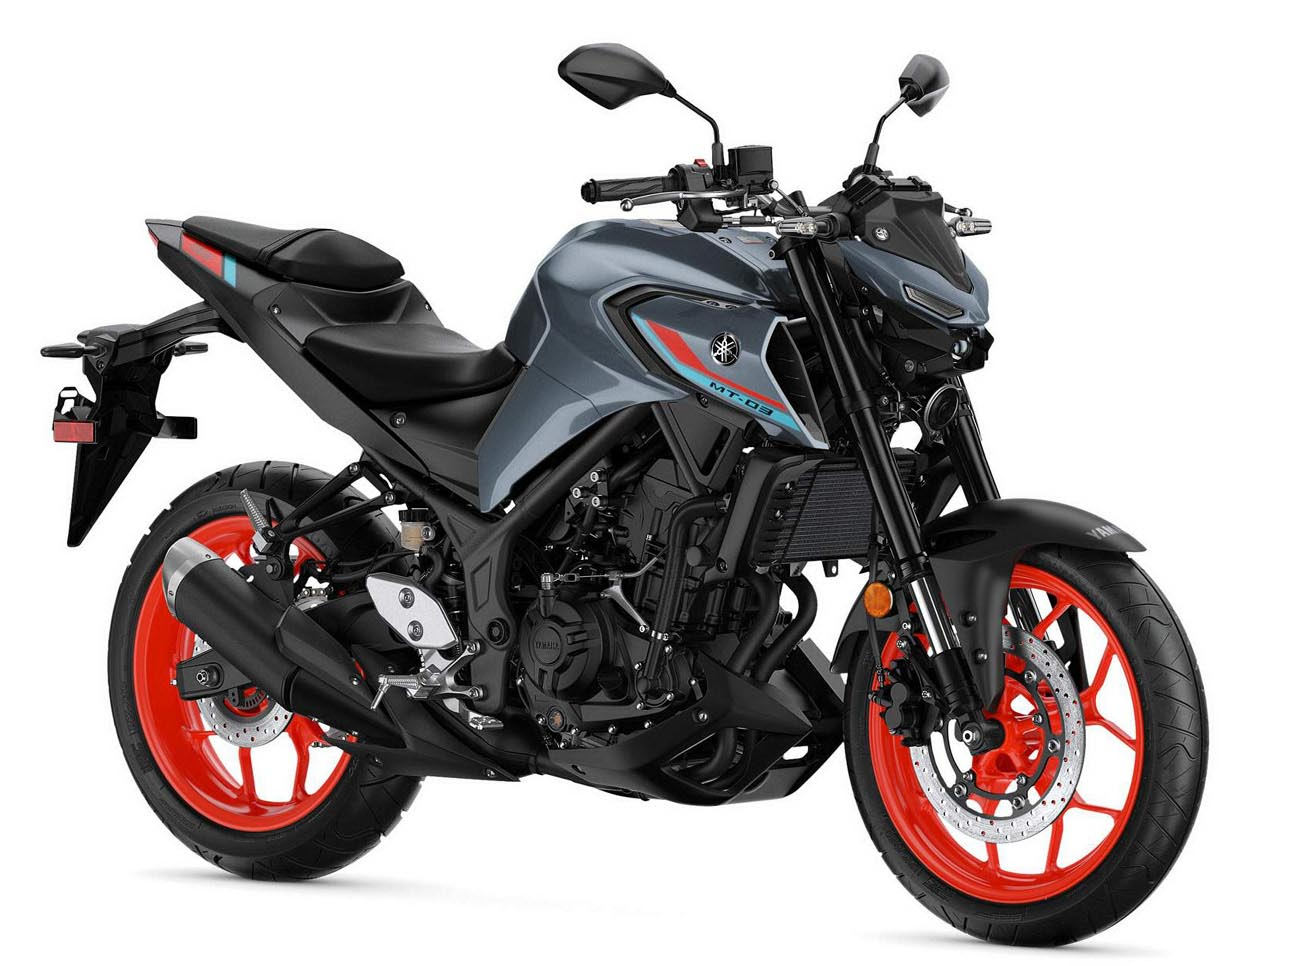 Yamaha MT-03 technical specifications